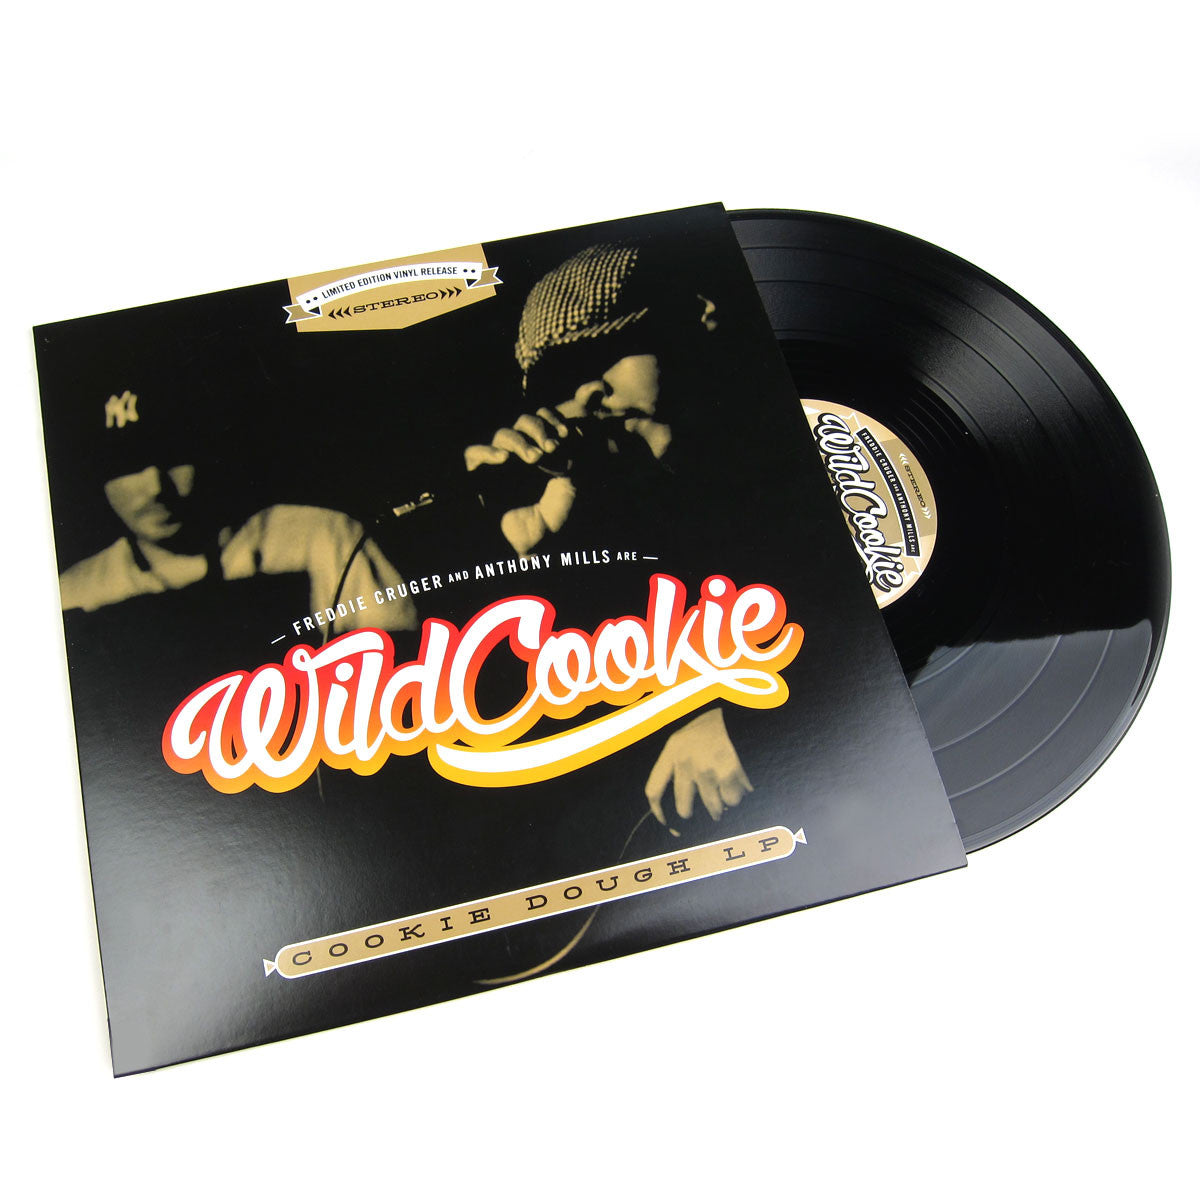 Wildcookie: Cookie Dough (Freddie Cruger, Red Astaire) Vinyl 2LP